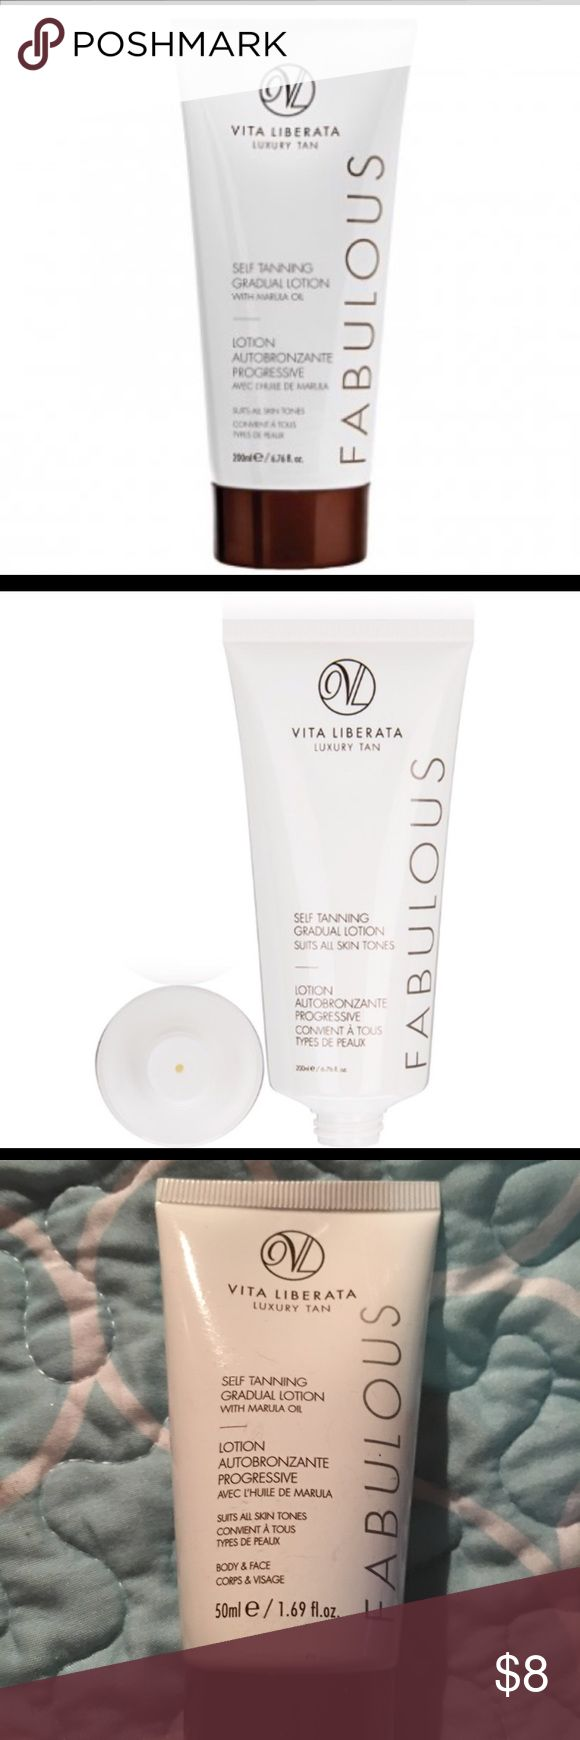 Vita Liberata FABULOUS Self Tanner Description Product Description This ultra-hydrating gradual tan lotion gives a subtle, sunkissed glow. It's gentle enough for dry and sensitive skin types, and creates a natural-looking tan that fades after four to seven days. Certified organic botanicals and a moisture locking system nourish the skin and give 72-hour hydration while Odour Remove technology ensures no smell whatsoever. vita Liberata Makeup